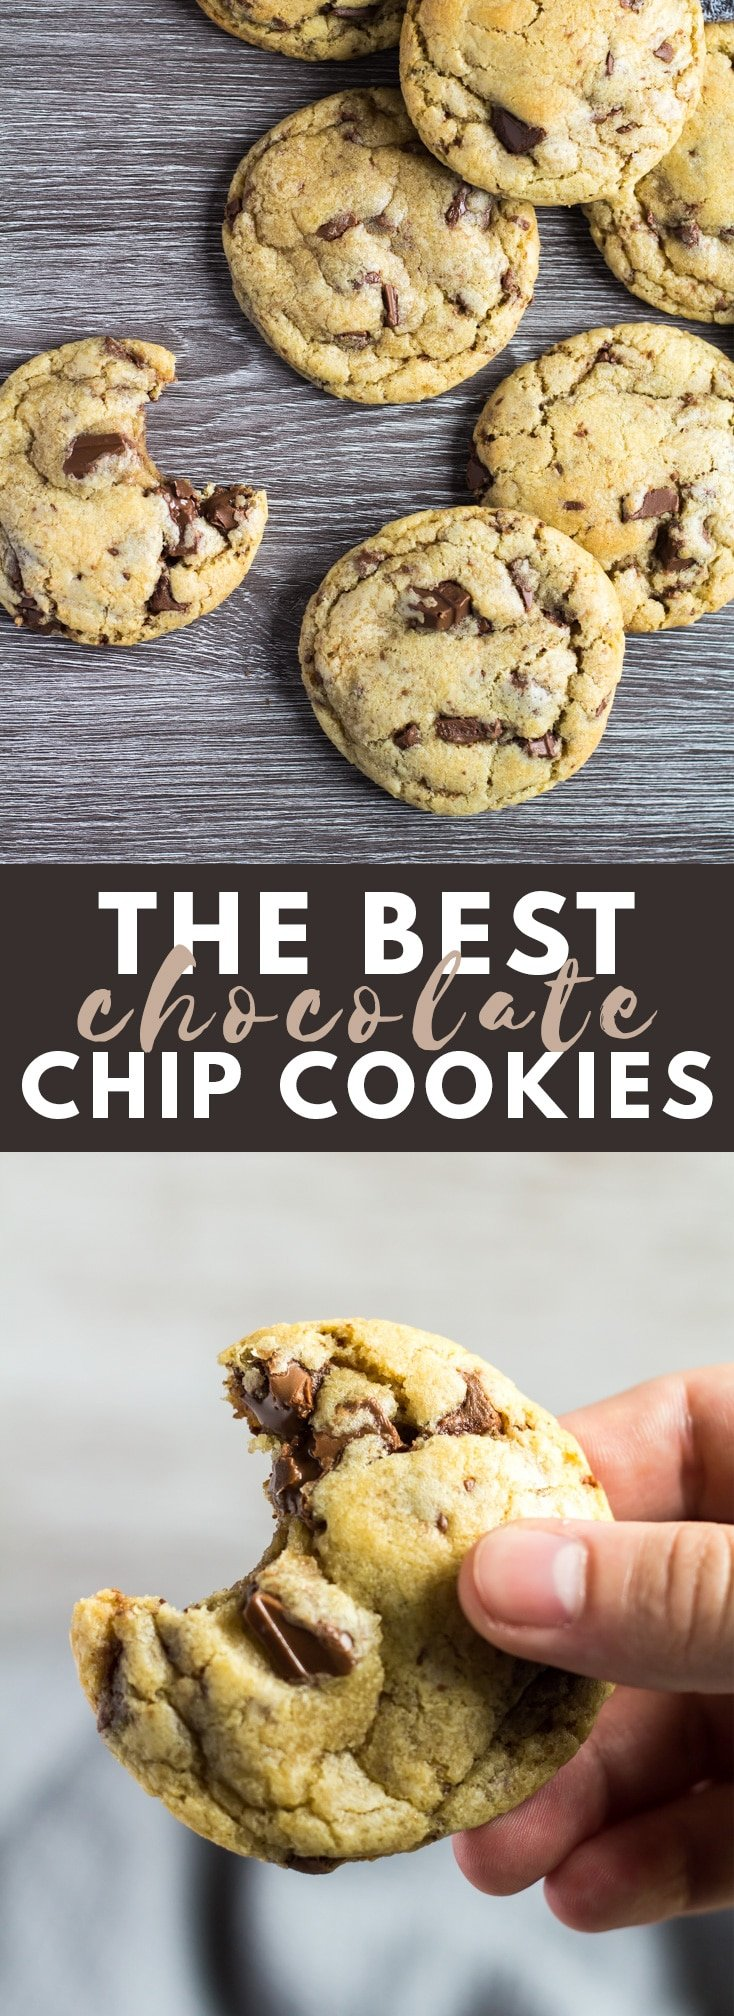 My Favourite Chocolate Chip Cookies - These cookies are deliciously soft, thick, big on flavour, and stuffed full of melty chocolate chips. They are a favourite for a reason!